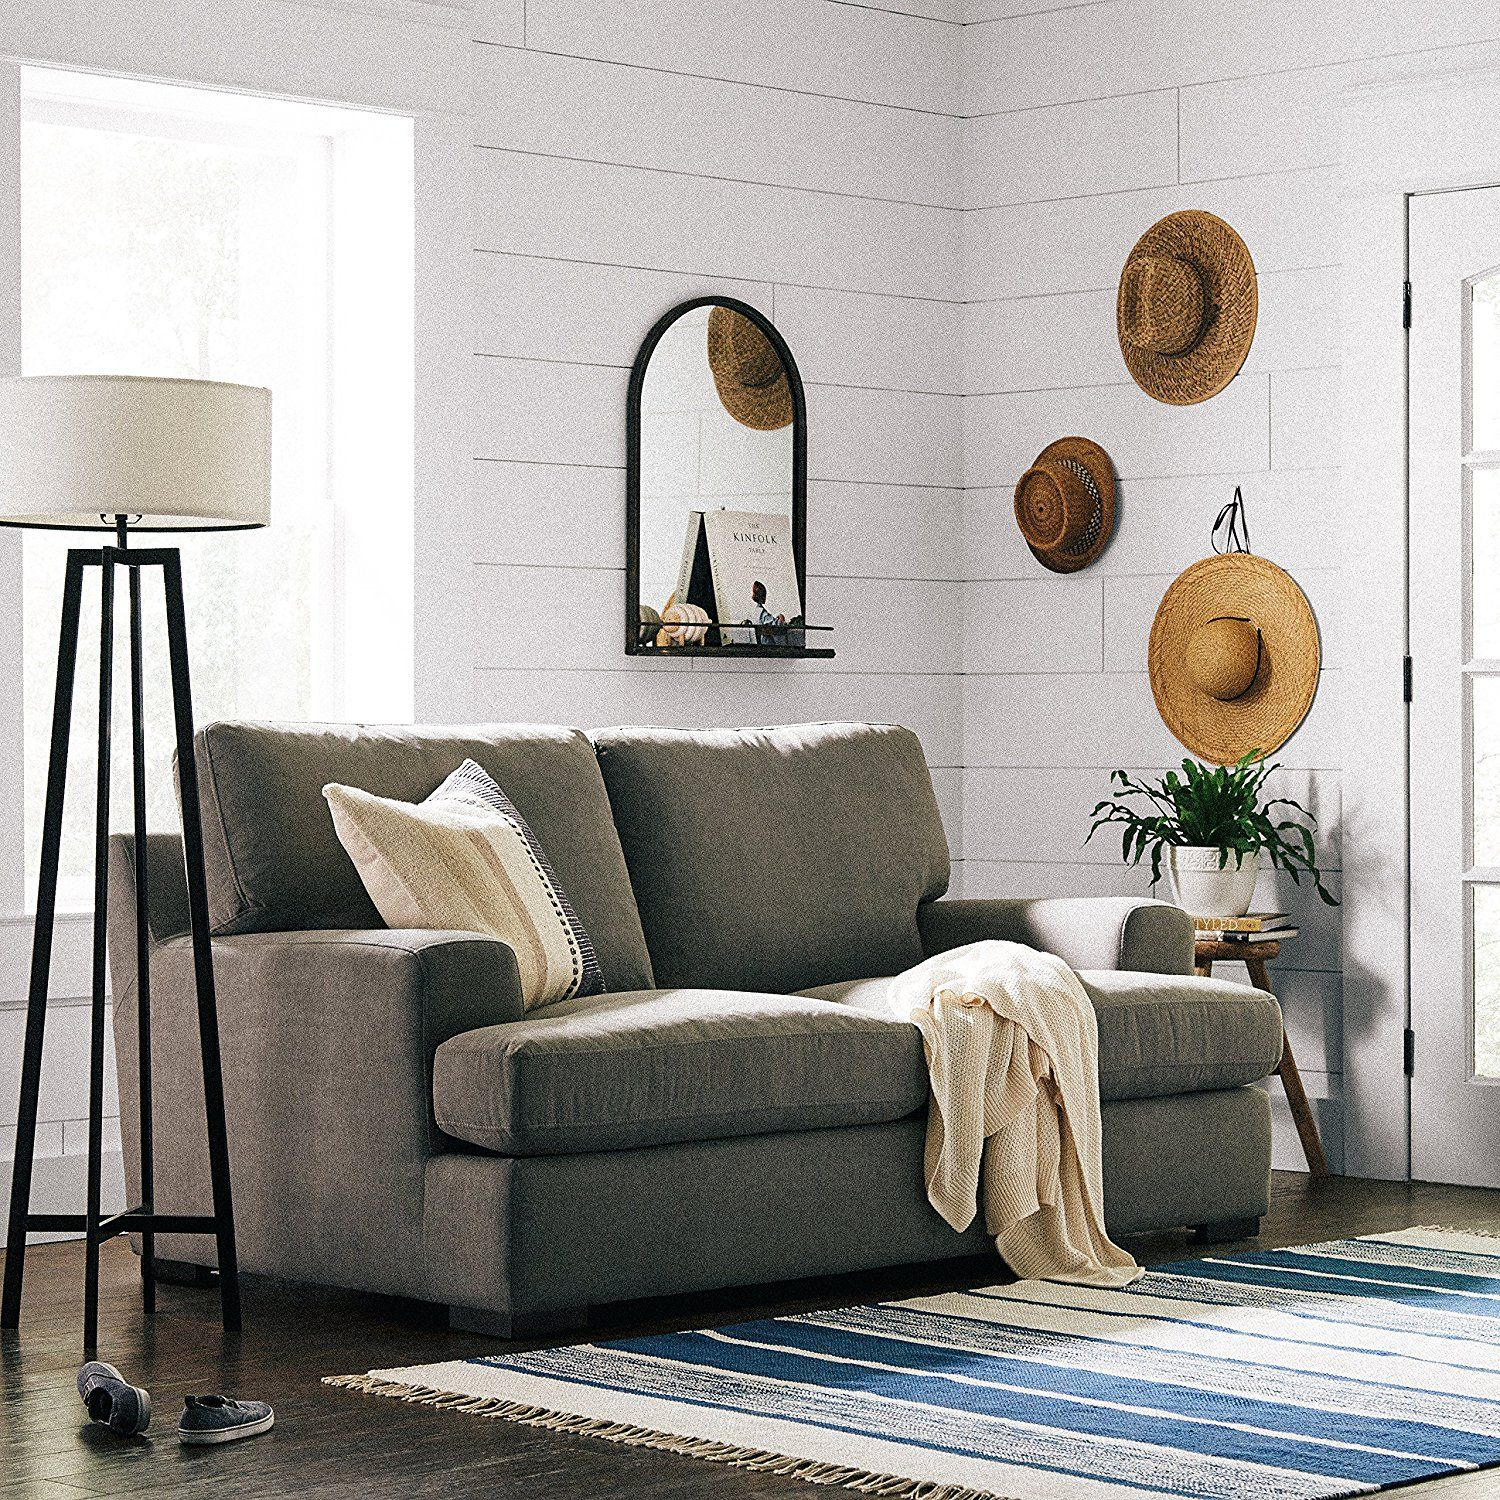 New Amazon Furniture Lines Rivet, Stone And Beam Launch